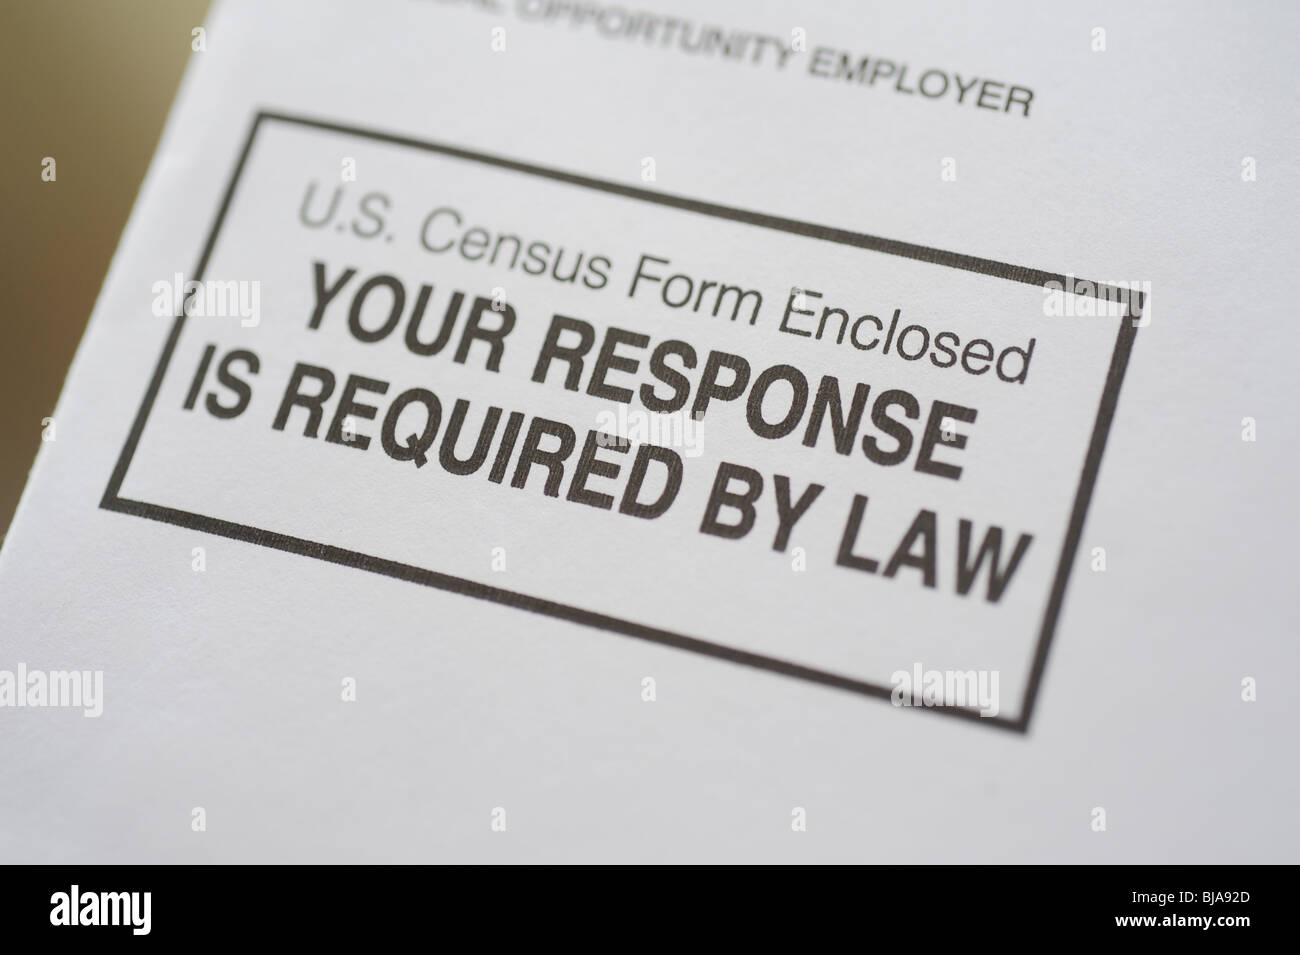 USA Census 2010 envelope sent to every address in America and required by law to fill out and return - Stock Image